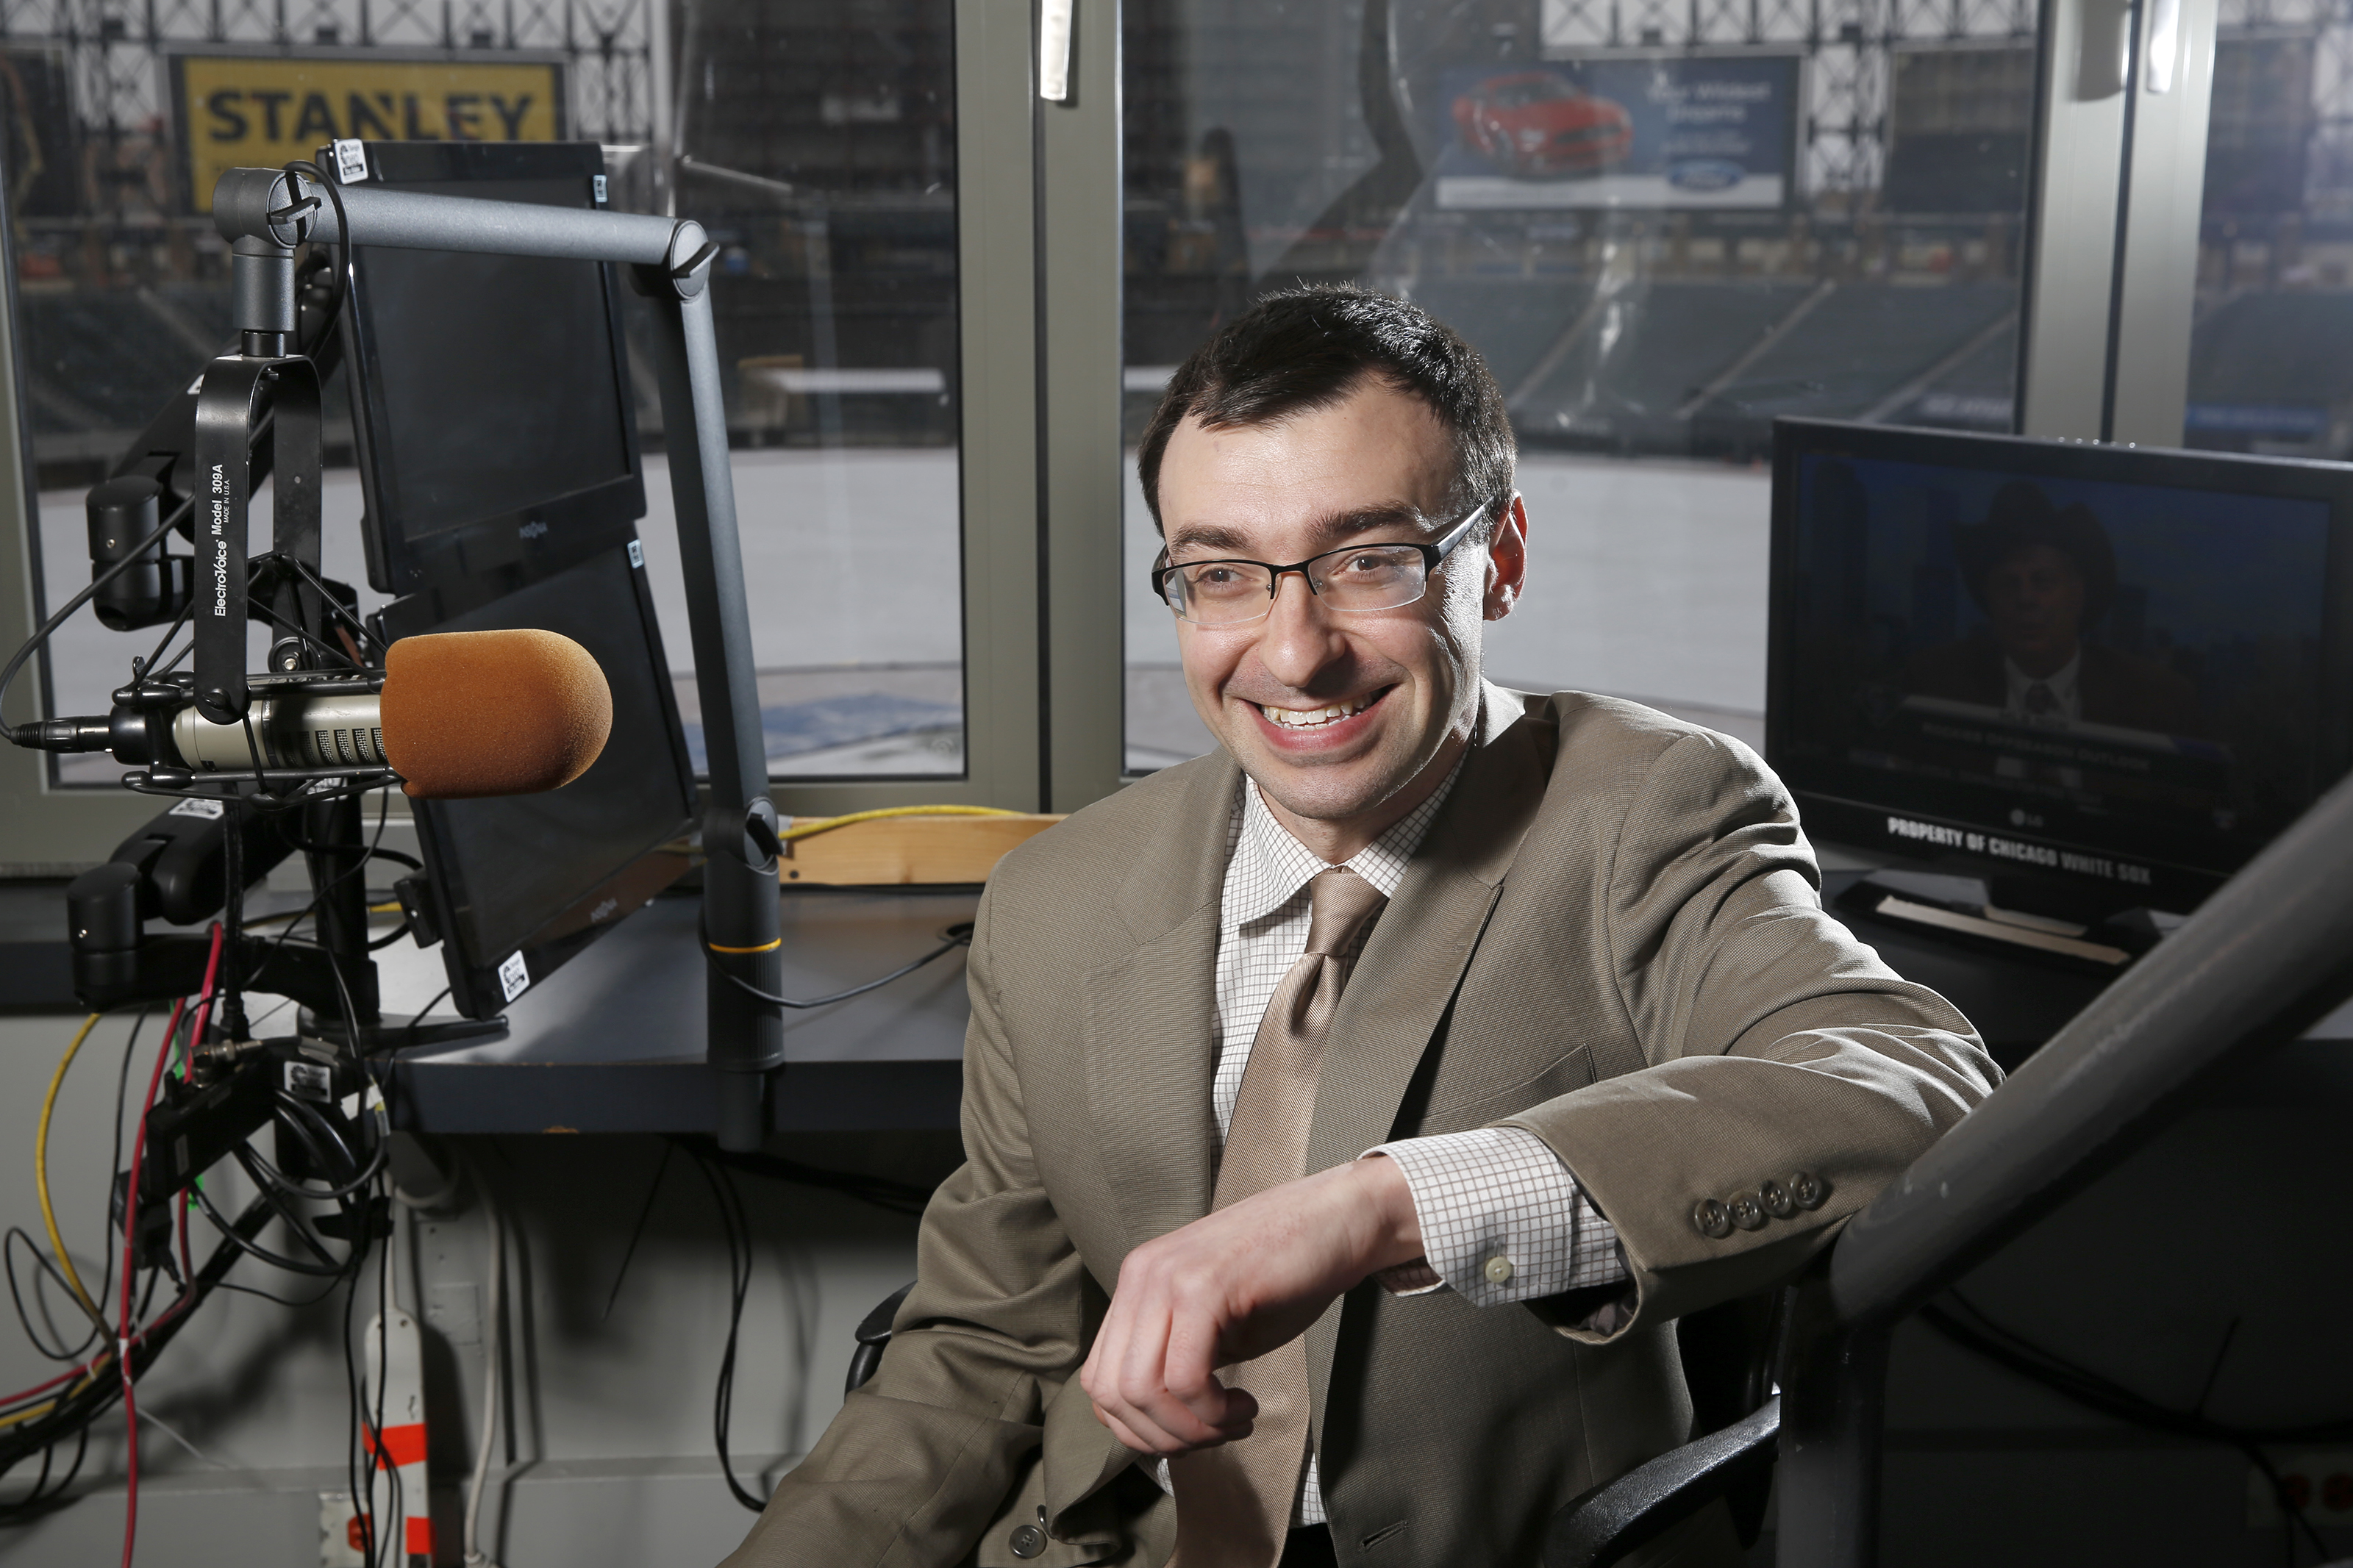 In this Monday Jan. 11, 2016 photo, New White Sox announcer Jason Benetti poses in his chair at U.S. Cellular Field in Chicago. In just a decade, Jason Benetti has gone from intense student at Syracuse University to the television broadcast booth calling